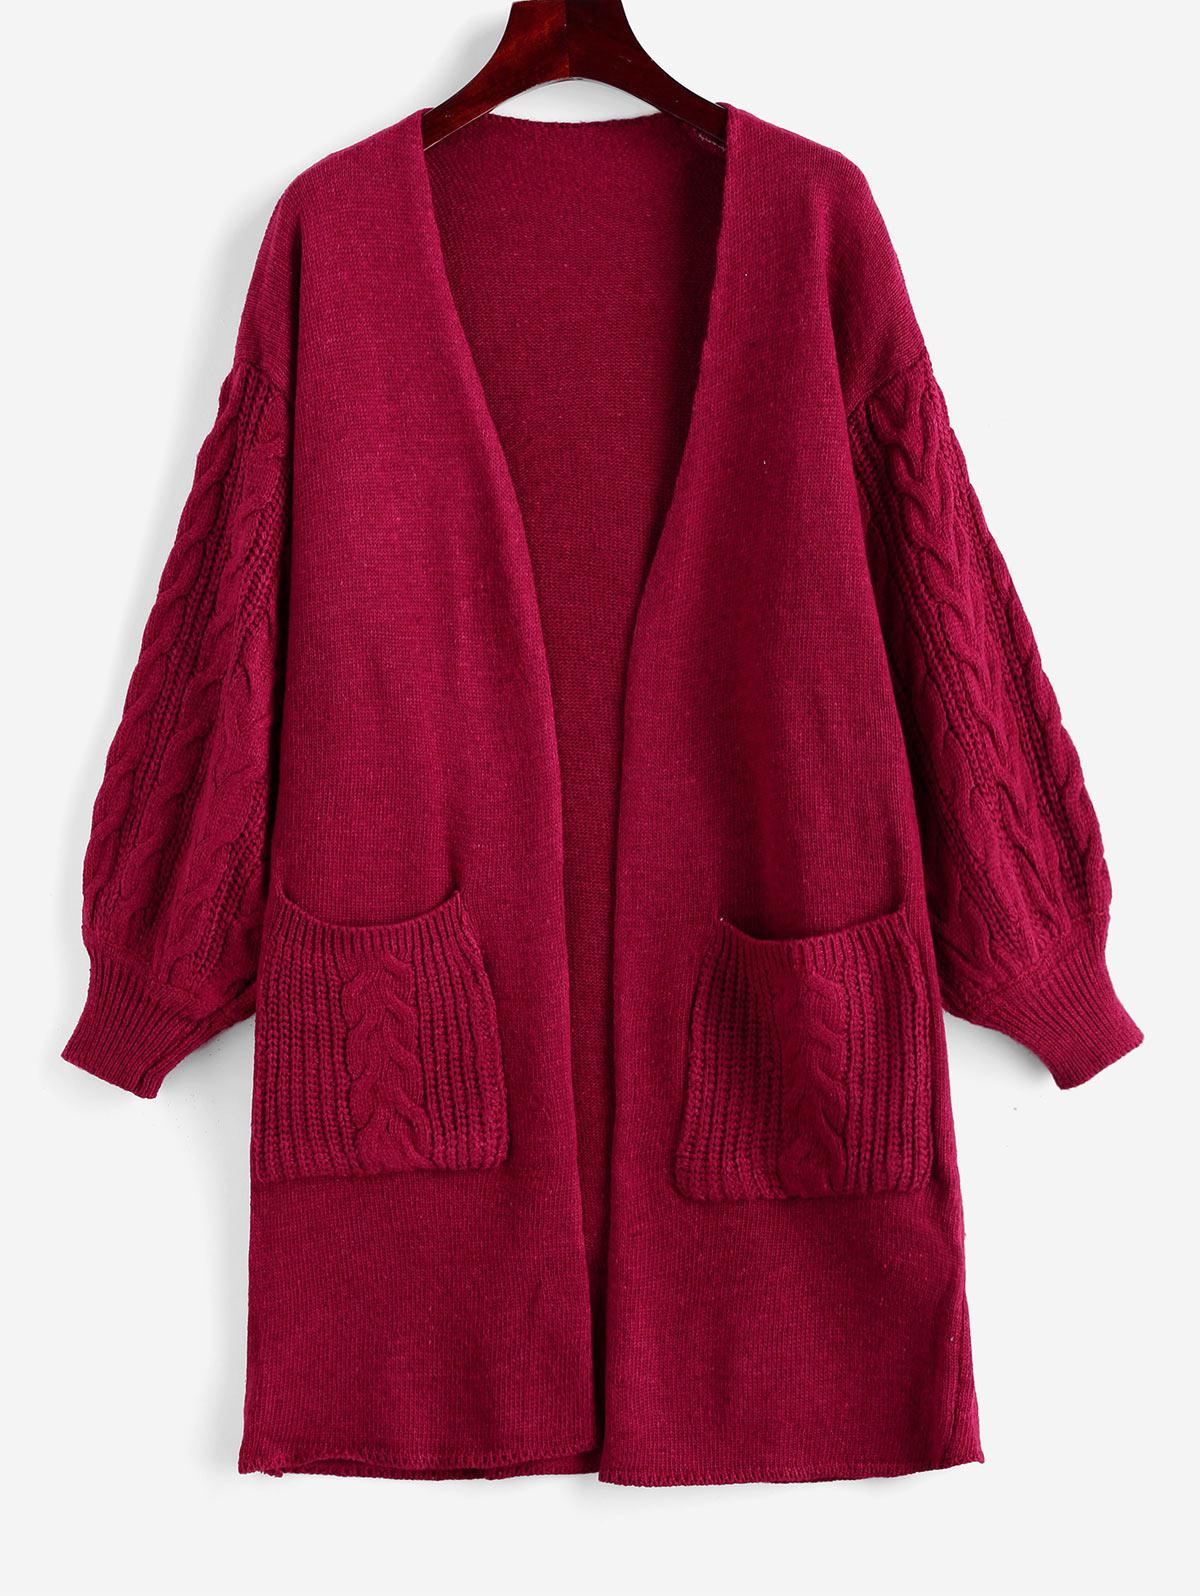 Open Placket Dual Pocket Cable Knit Cardigan